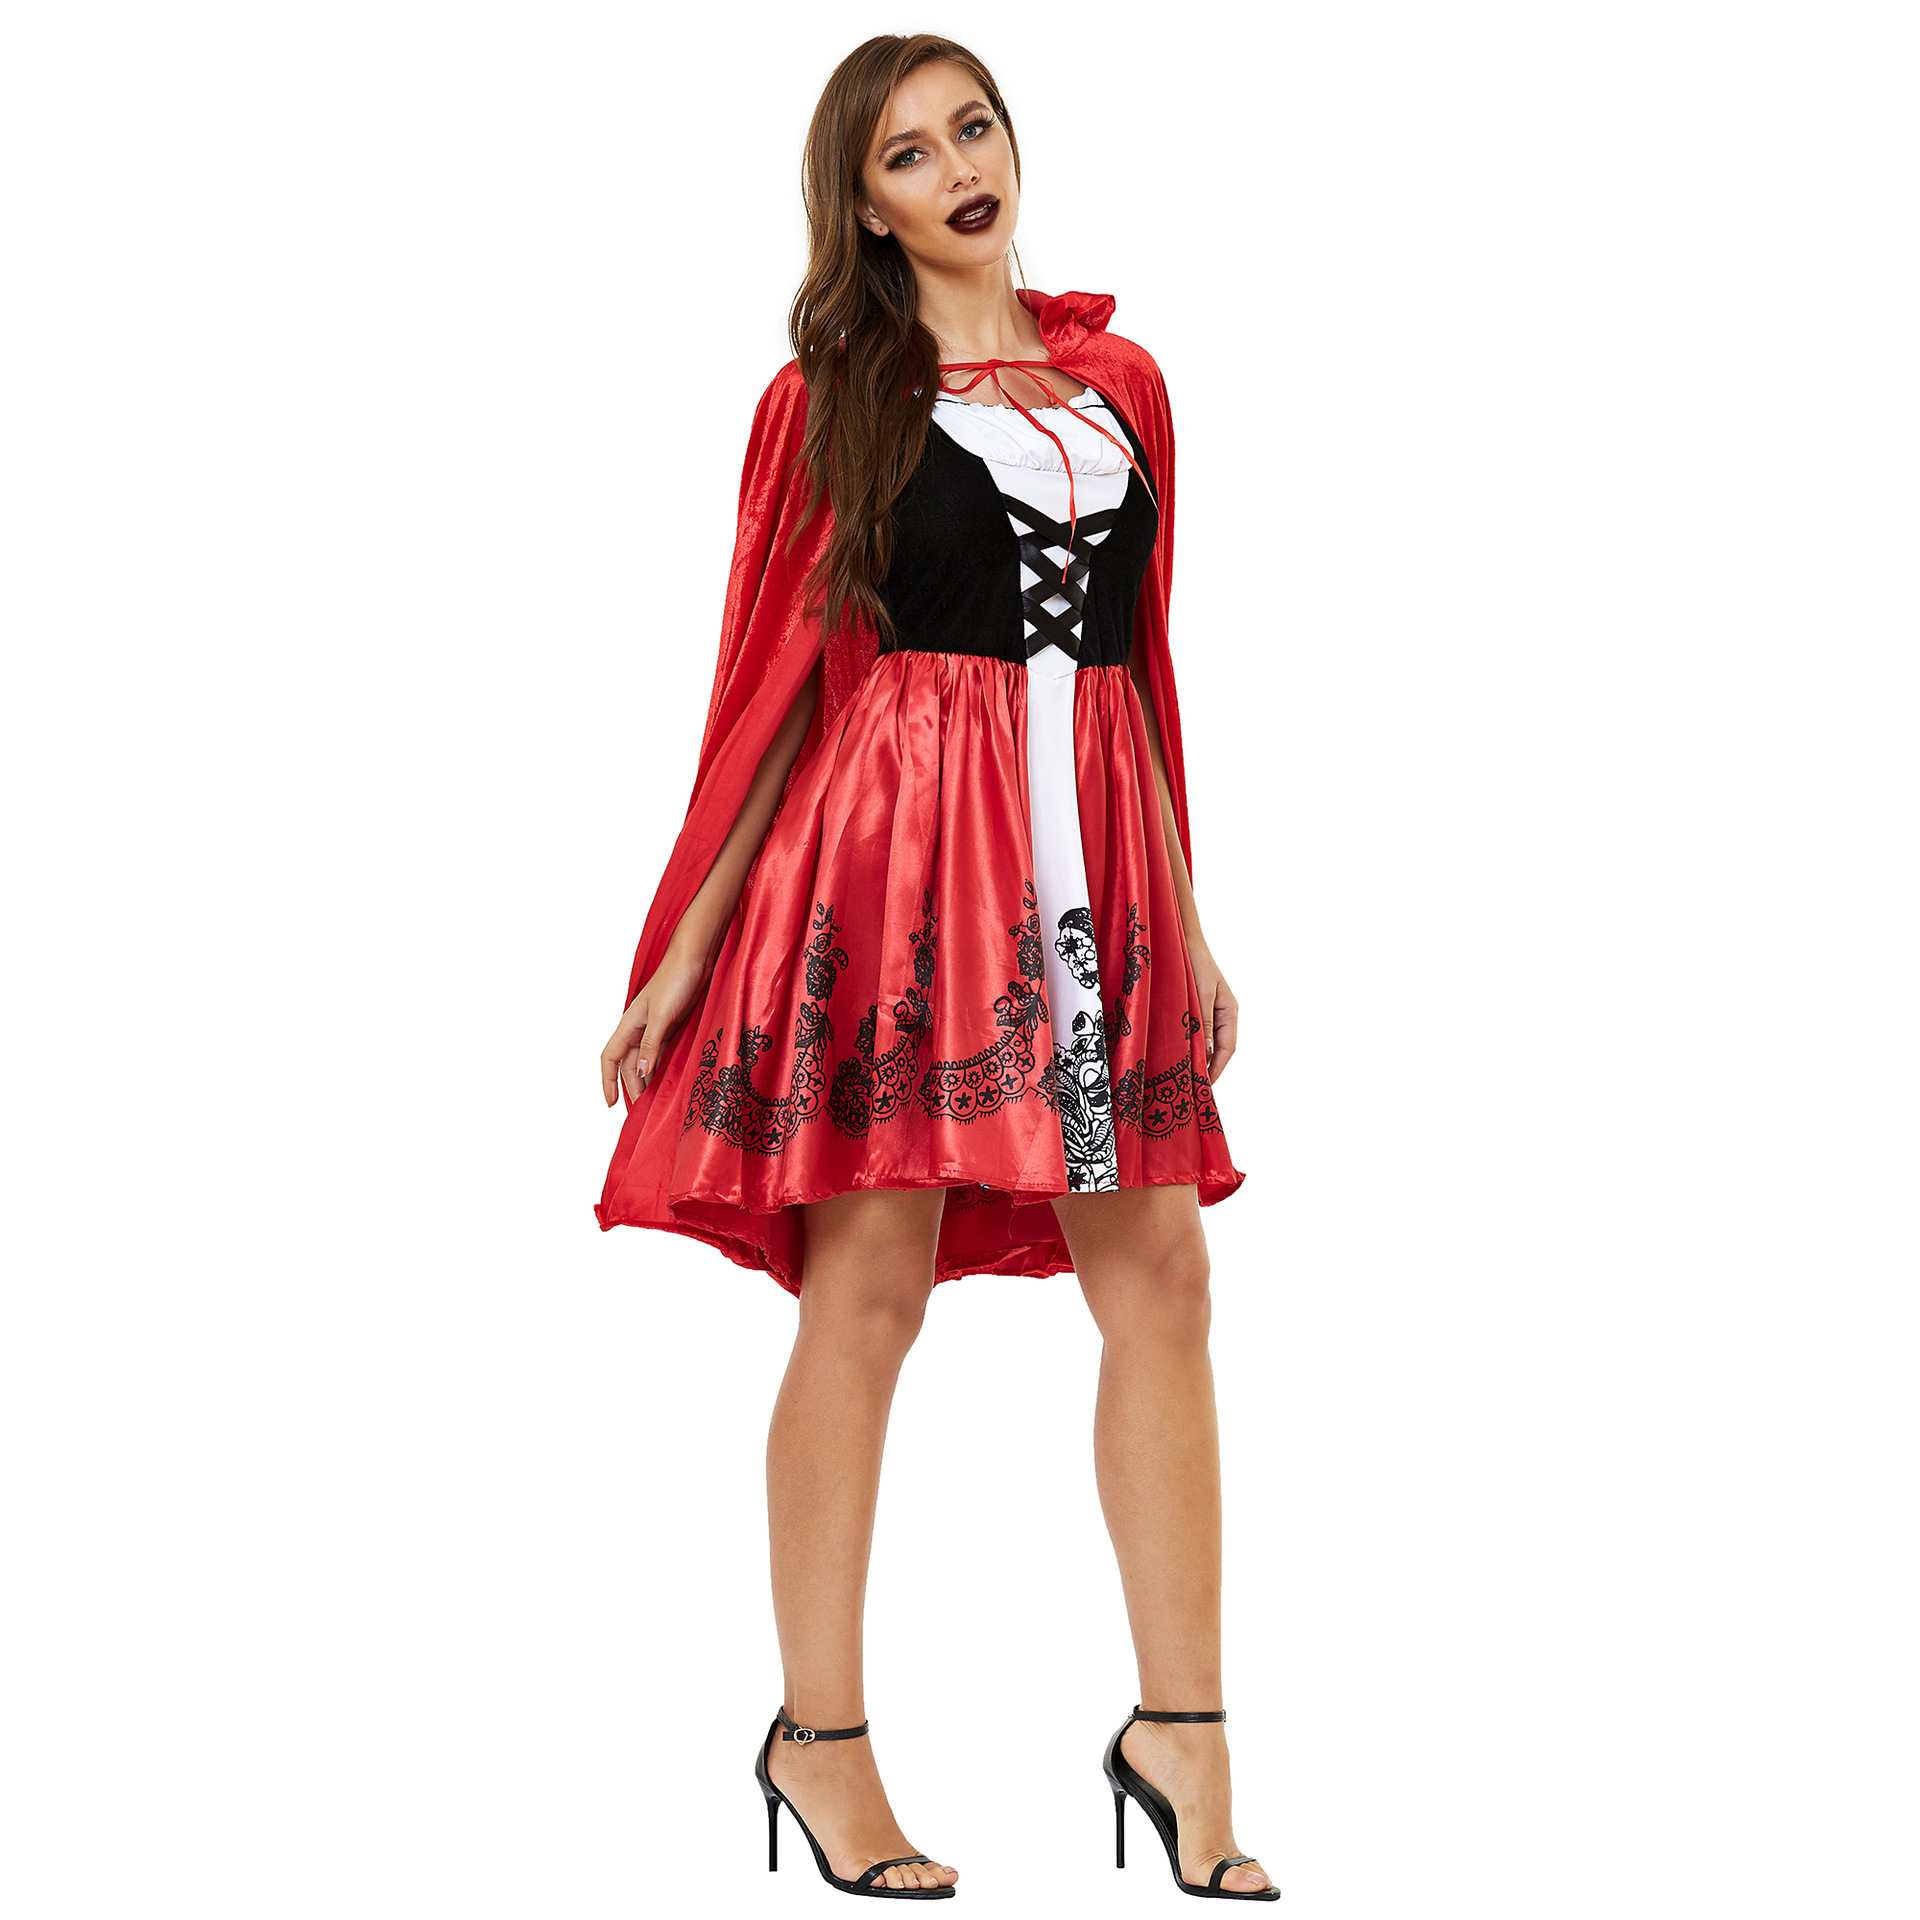 Women's Halloween Cape Little Red Riding Hood Cosplay role uniform thickened s-3xl plus 5